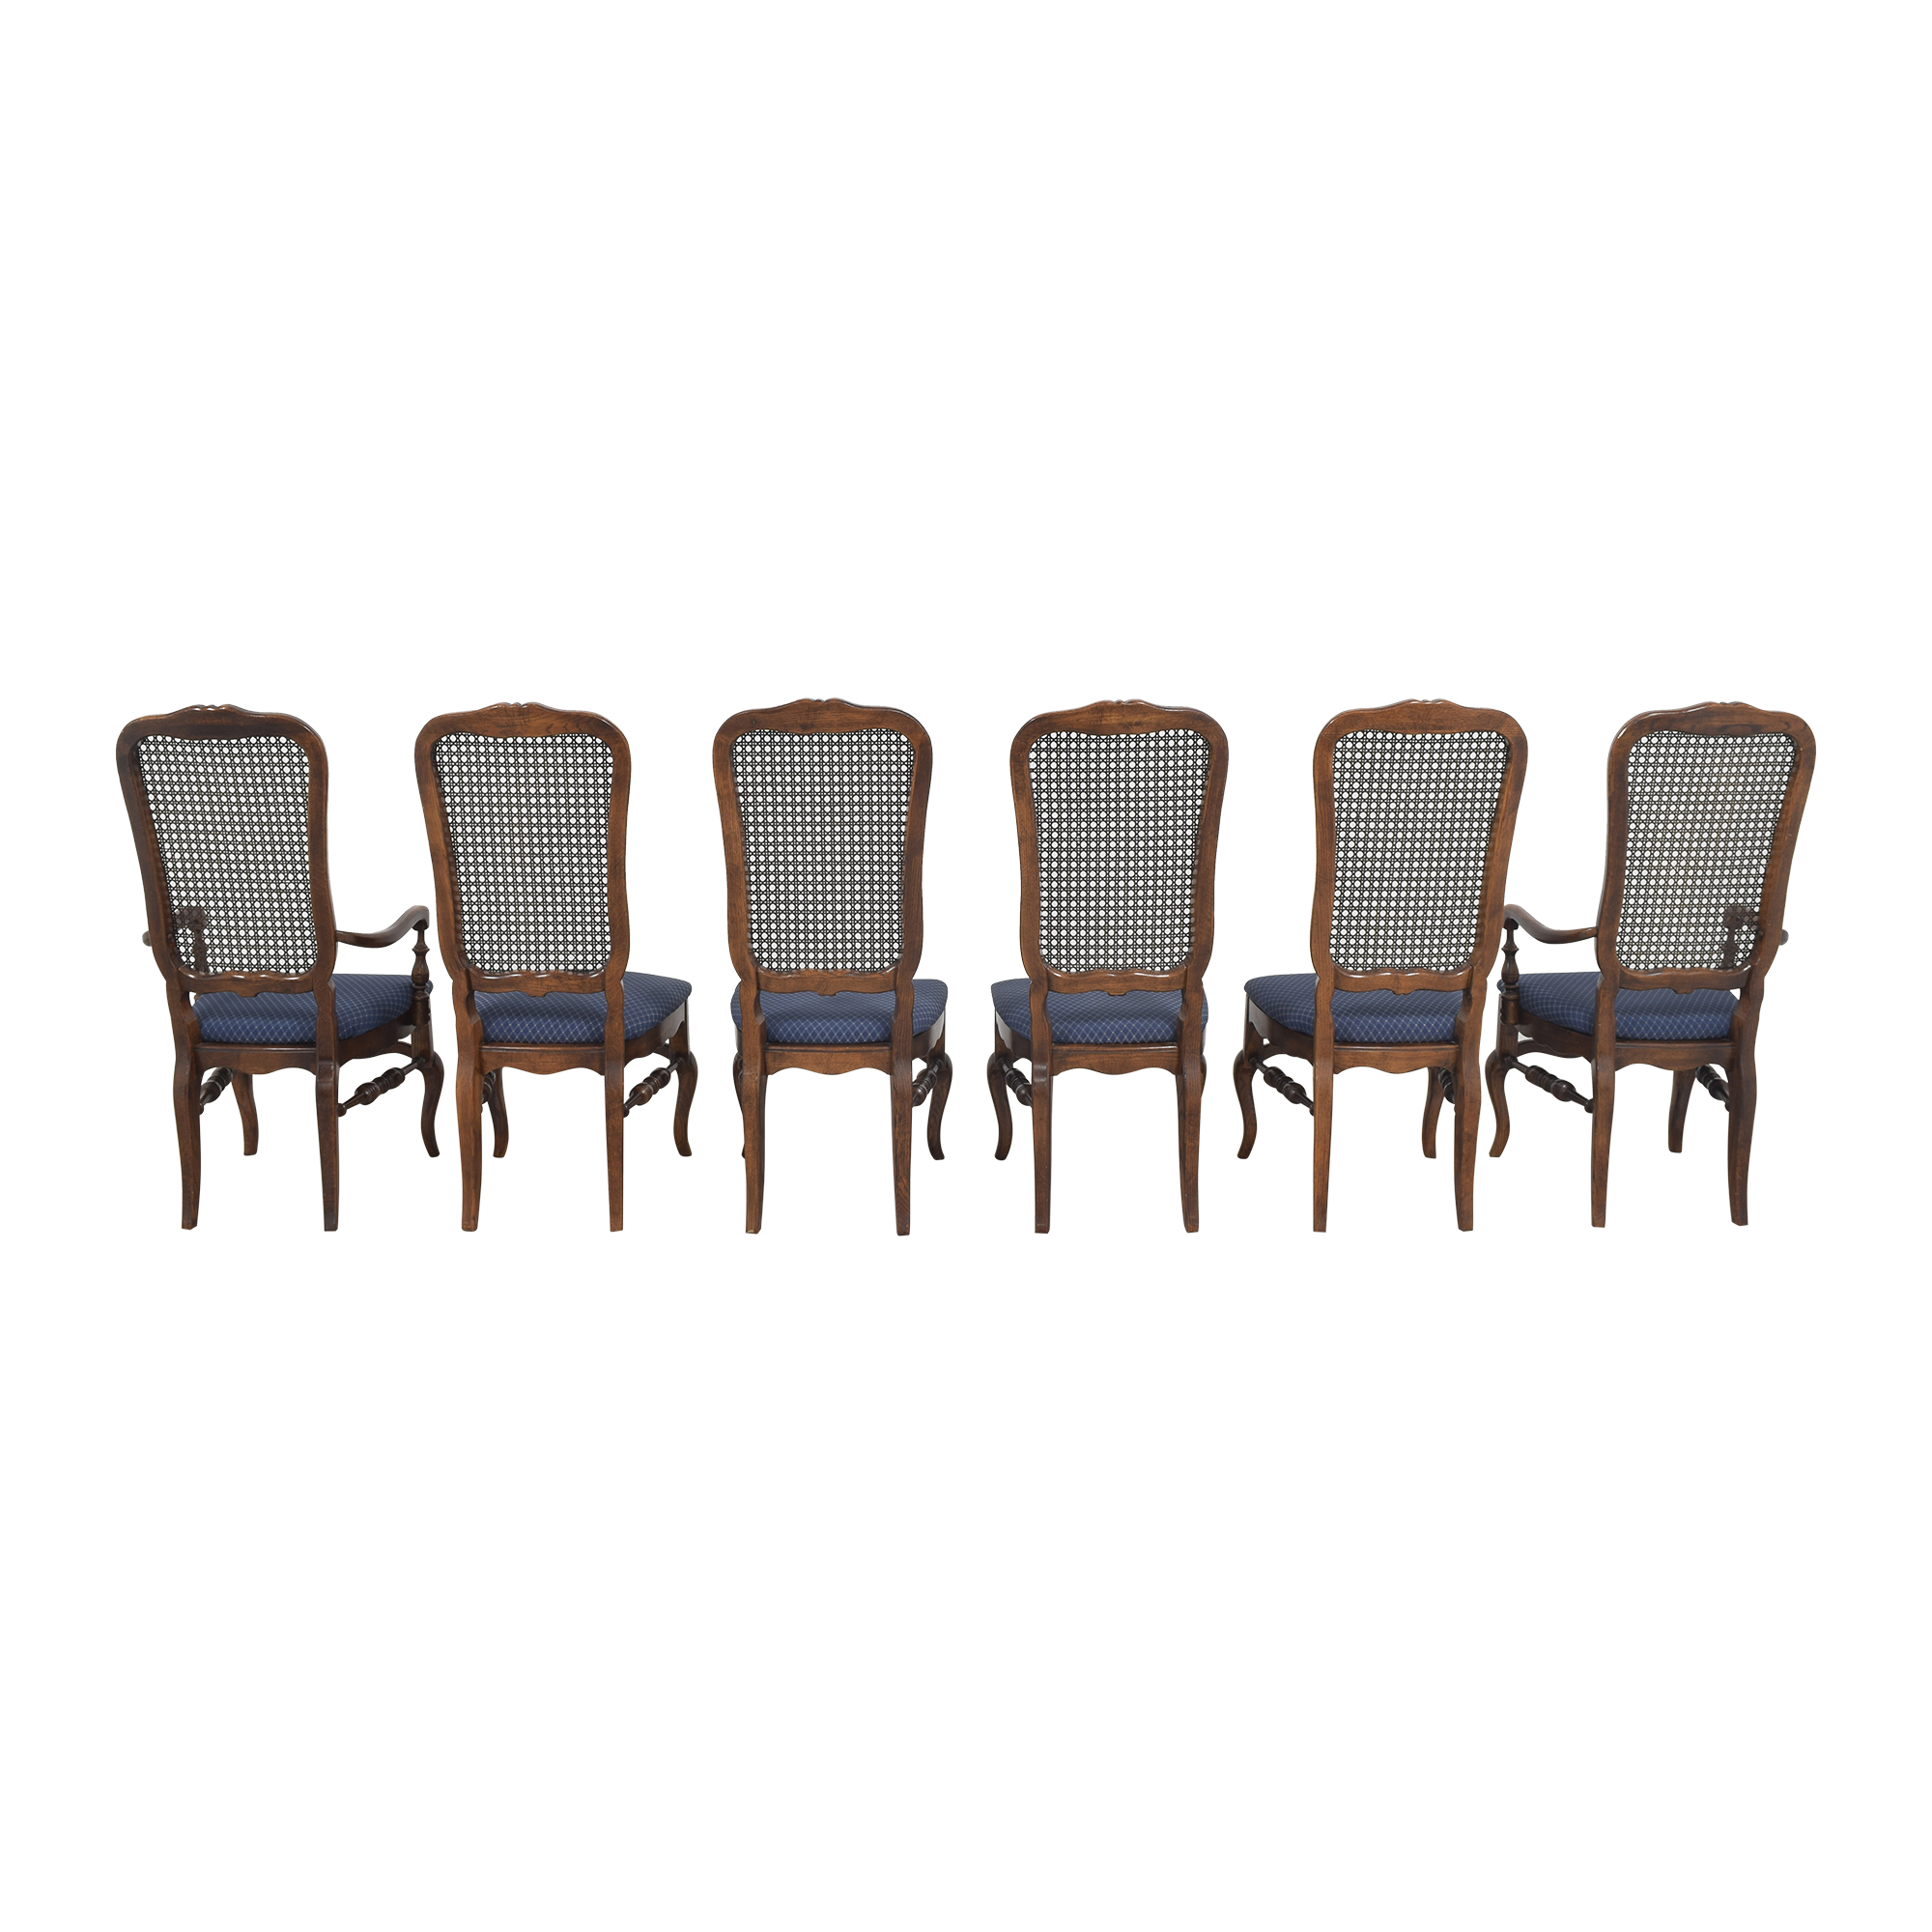 buy Thomasville Upholstered Dining Chairs Thomasville Dining Chairs